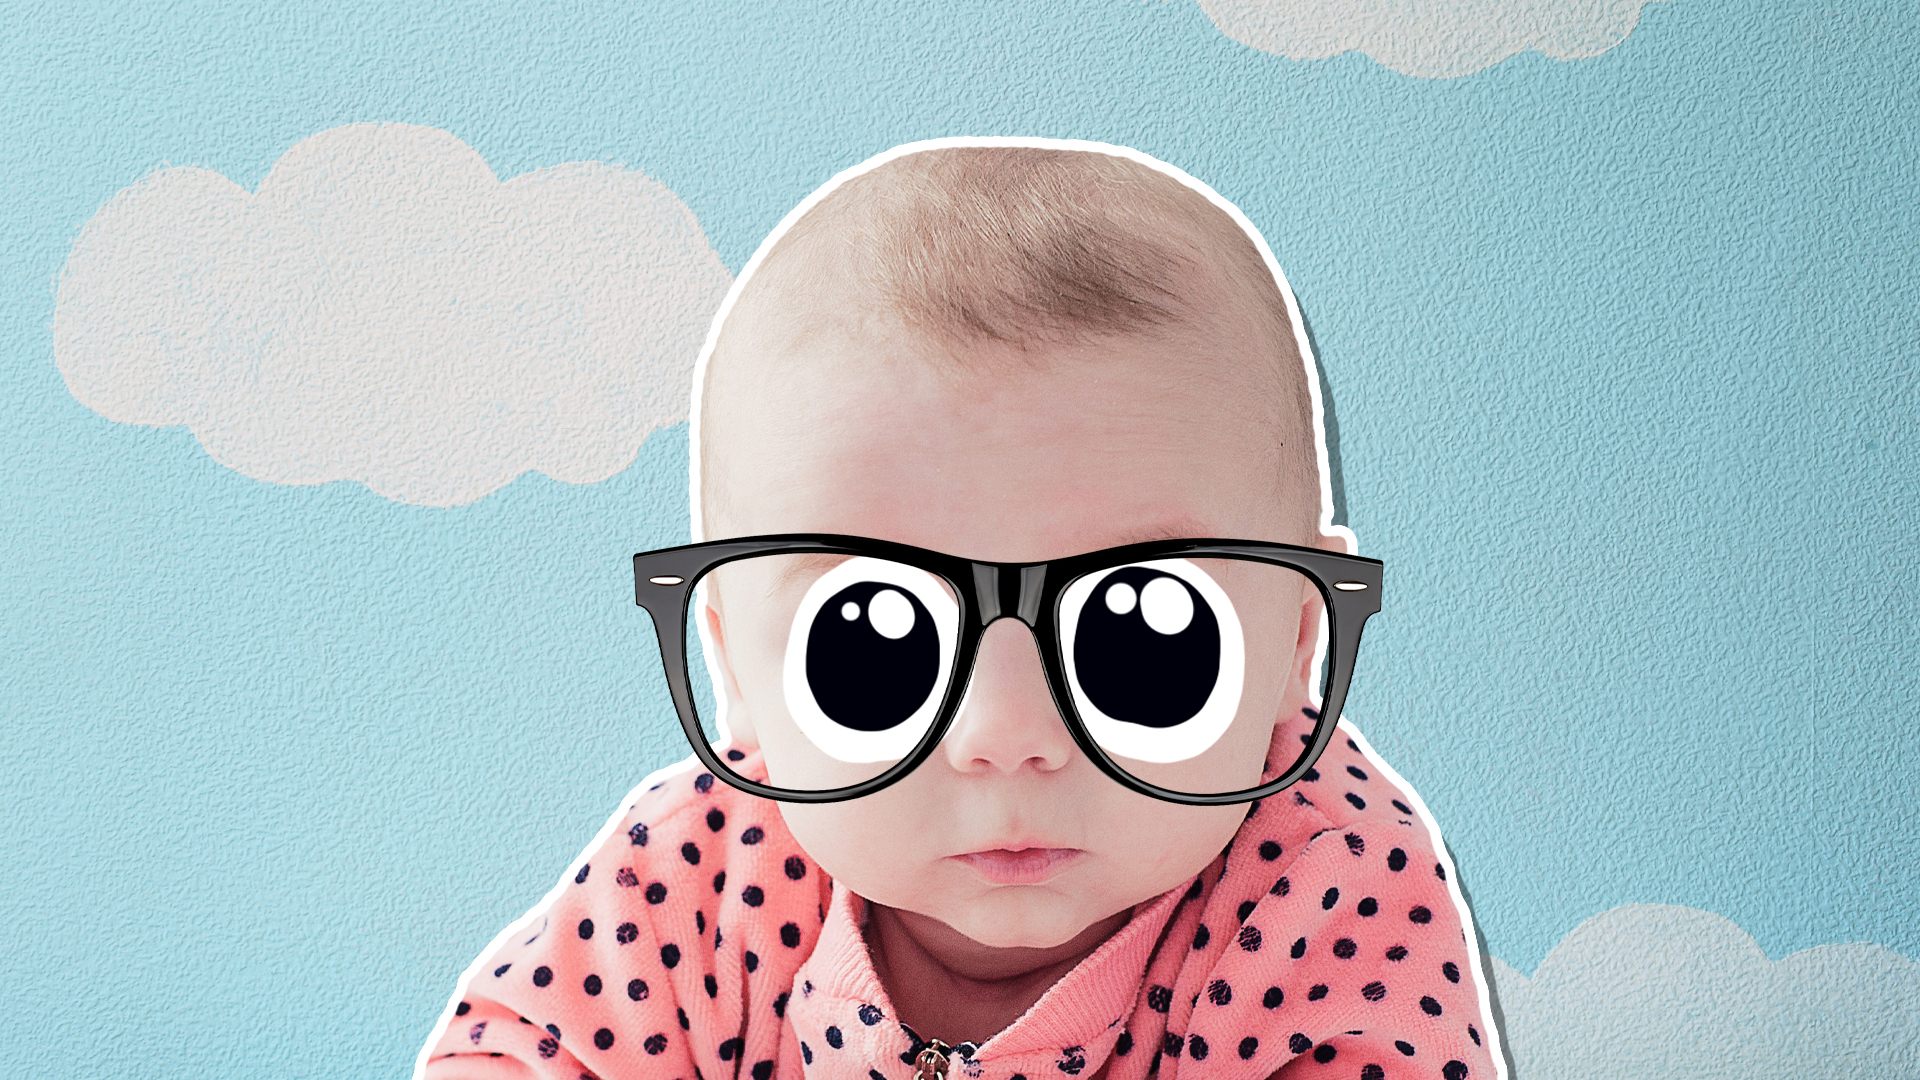 A baby wearing glasses